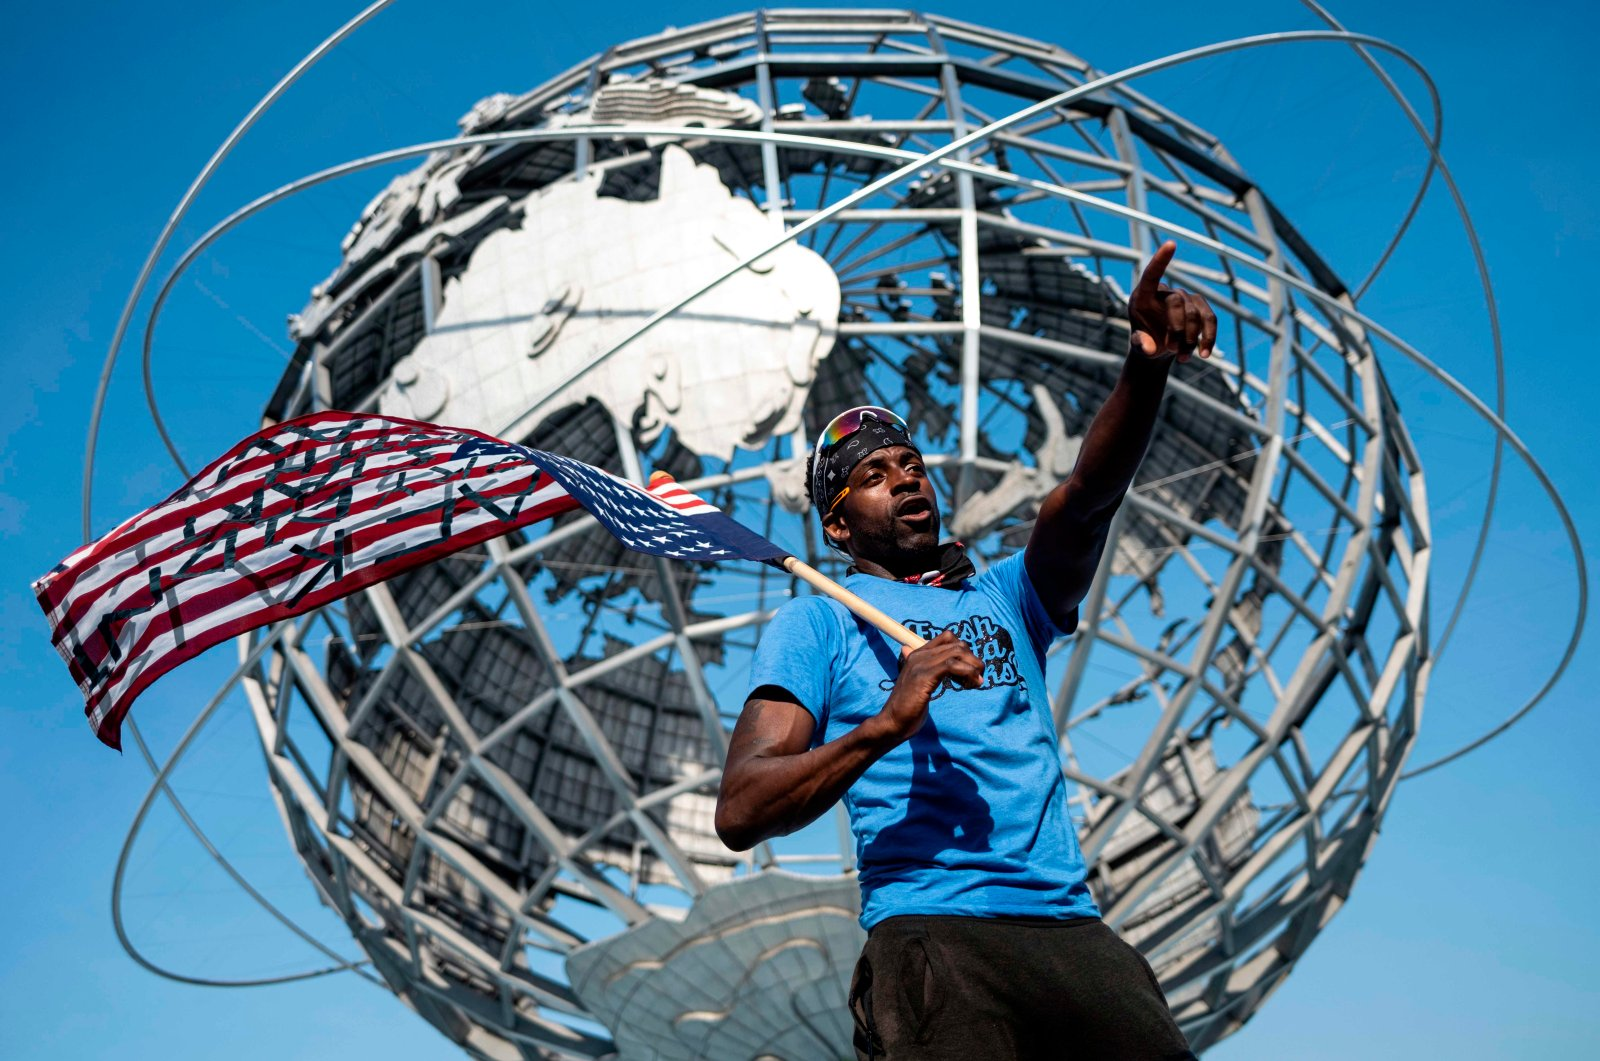 A protestor holds an upside-down American flag in front of the Unisphere during a Justice Ride, protesting the death of George Floyd, in the Flushing Meadows-Corona Park in the borough of Queens, New York City, July 18, 2020. (AFP Photo)